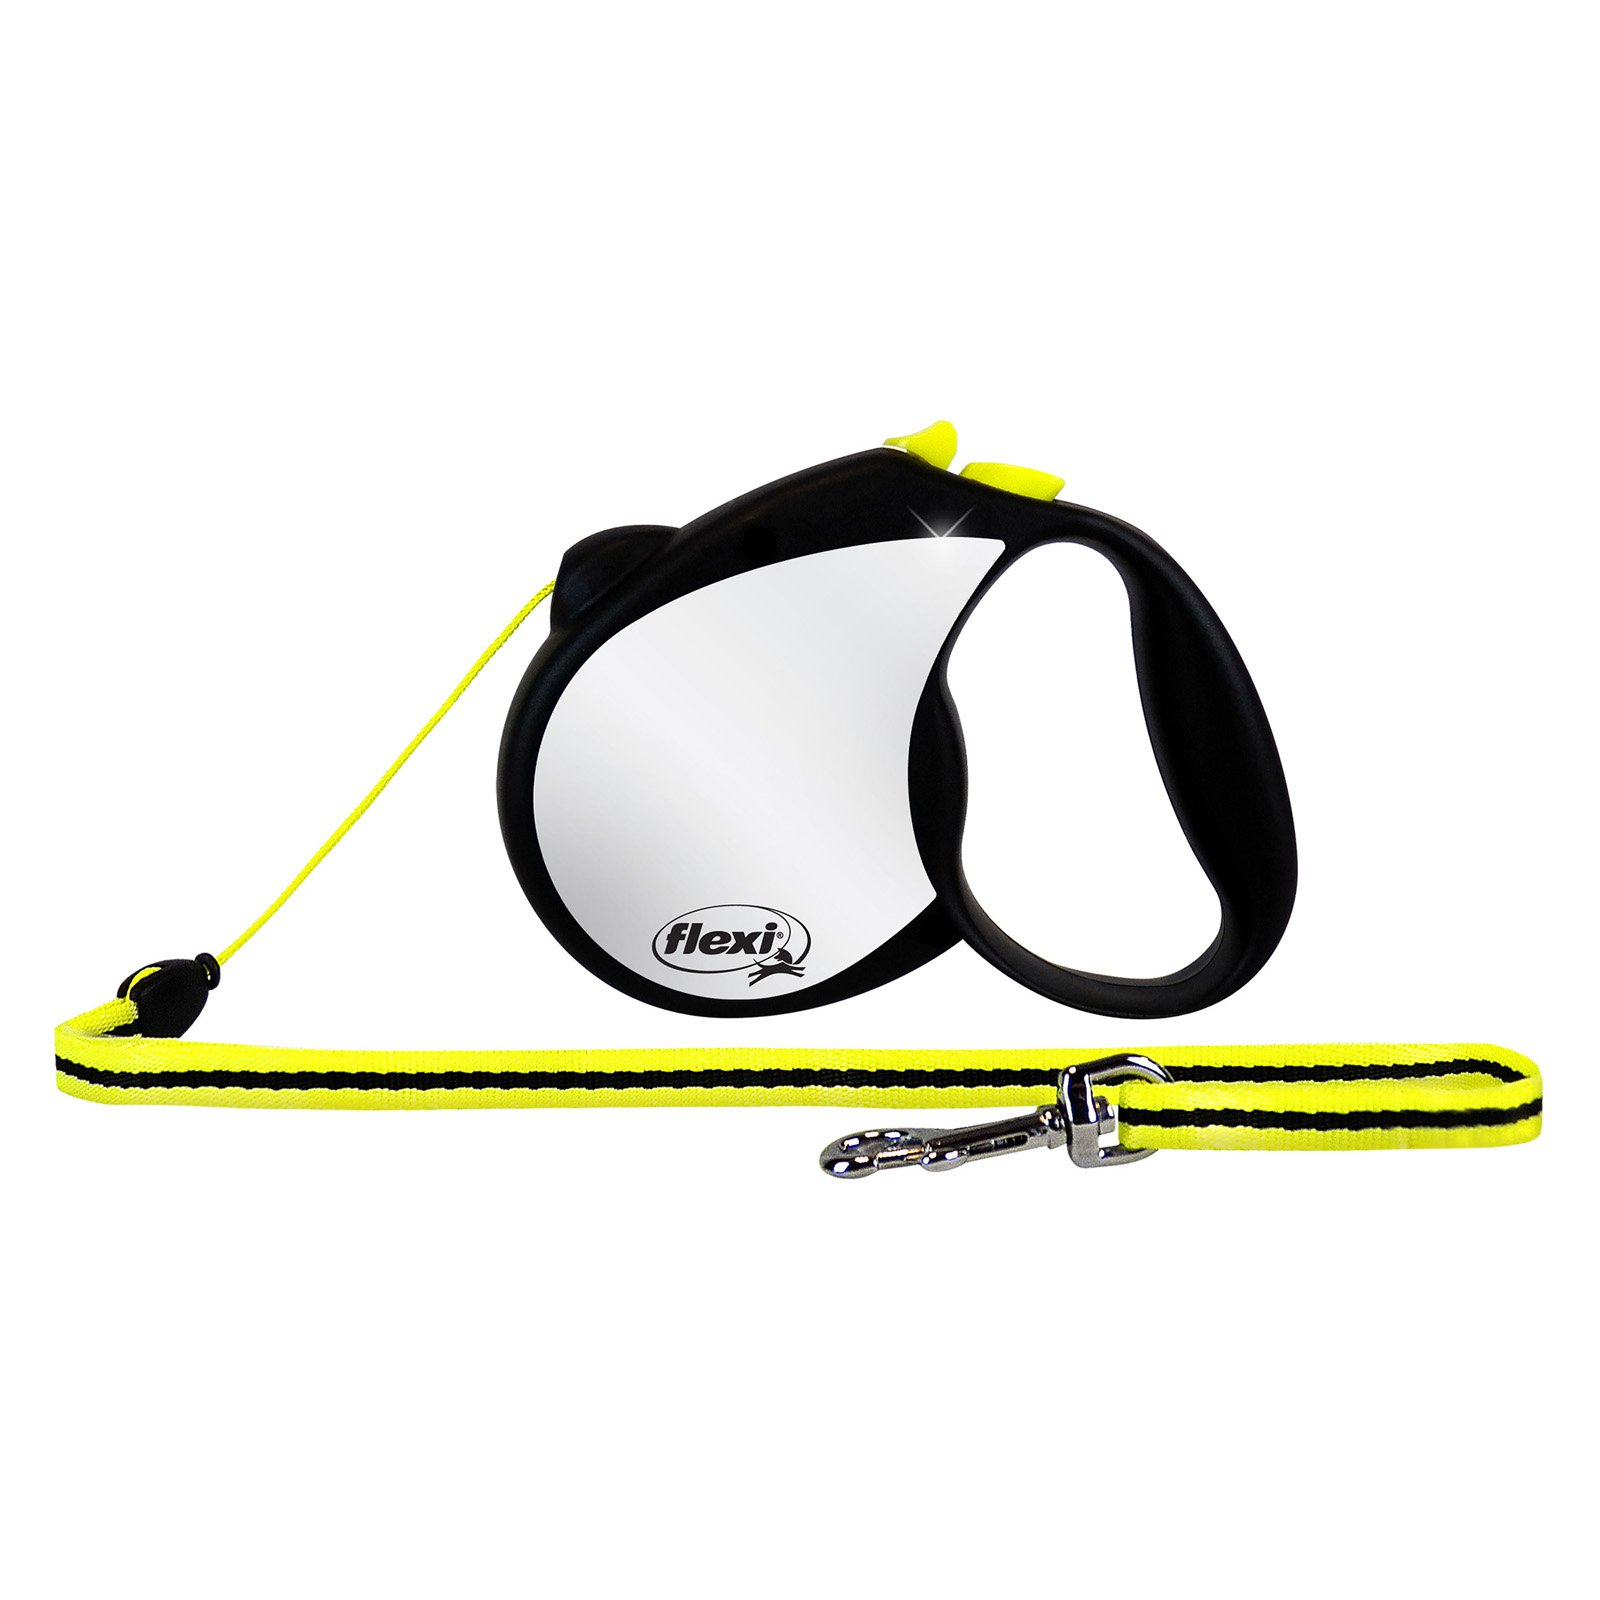 Flexi RFLCT S Small Black and Neon Yellow Reflective Retractable Dog Leash